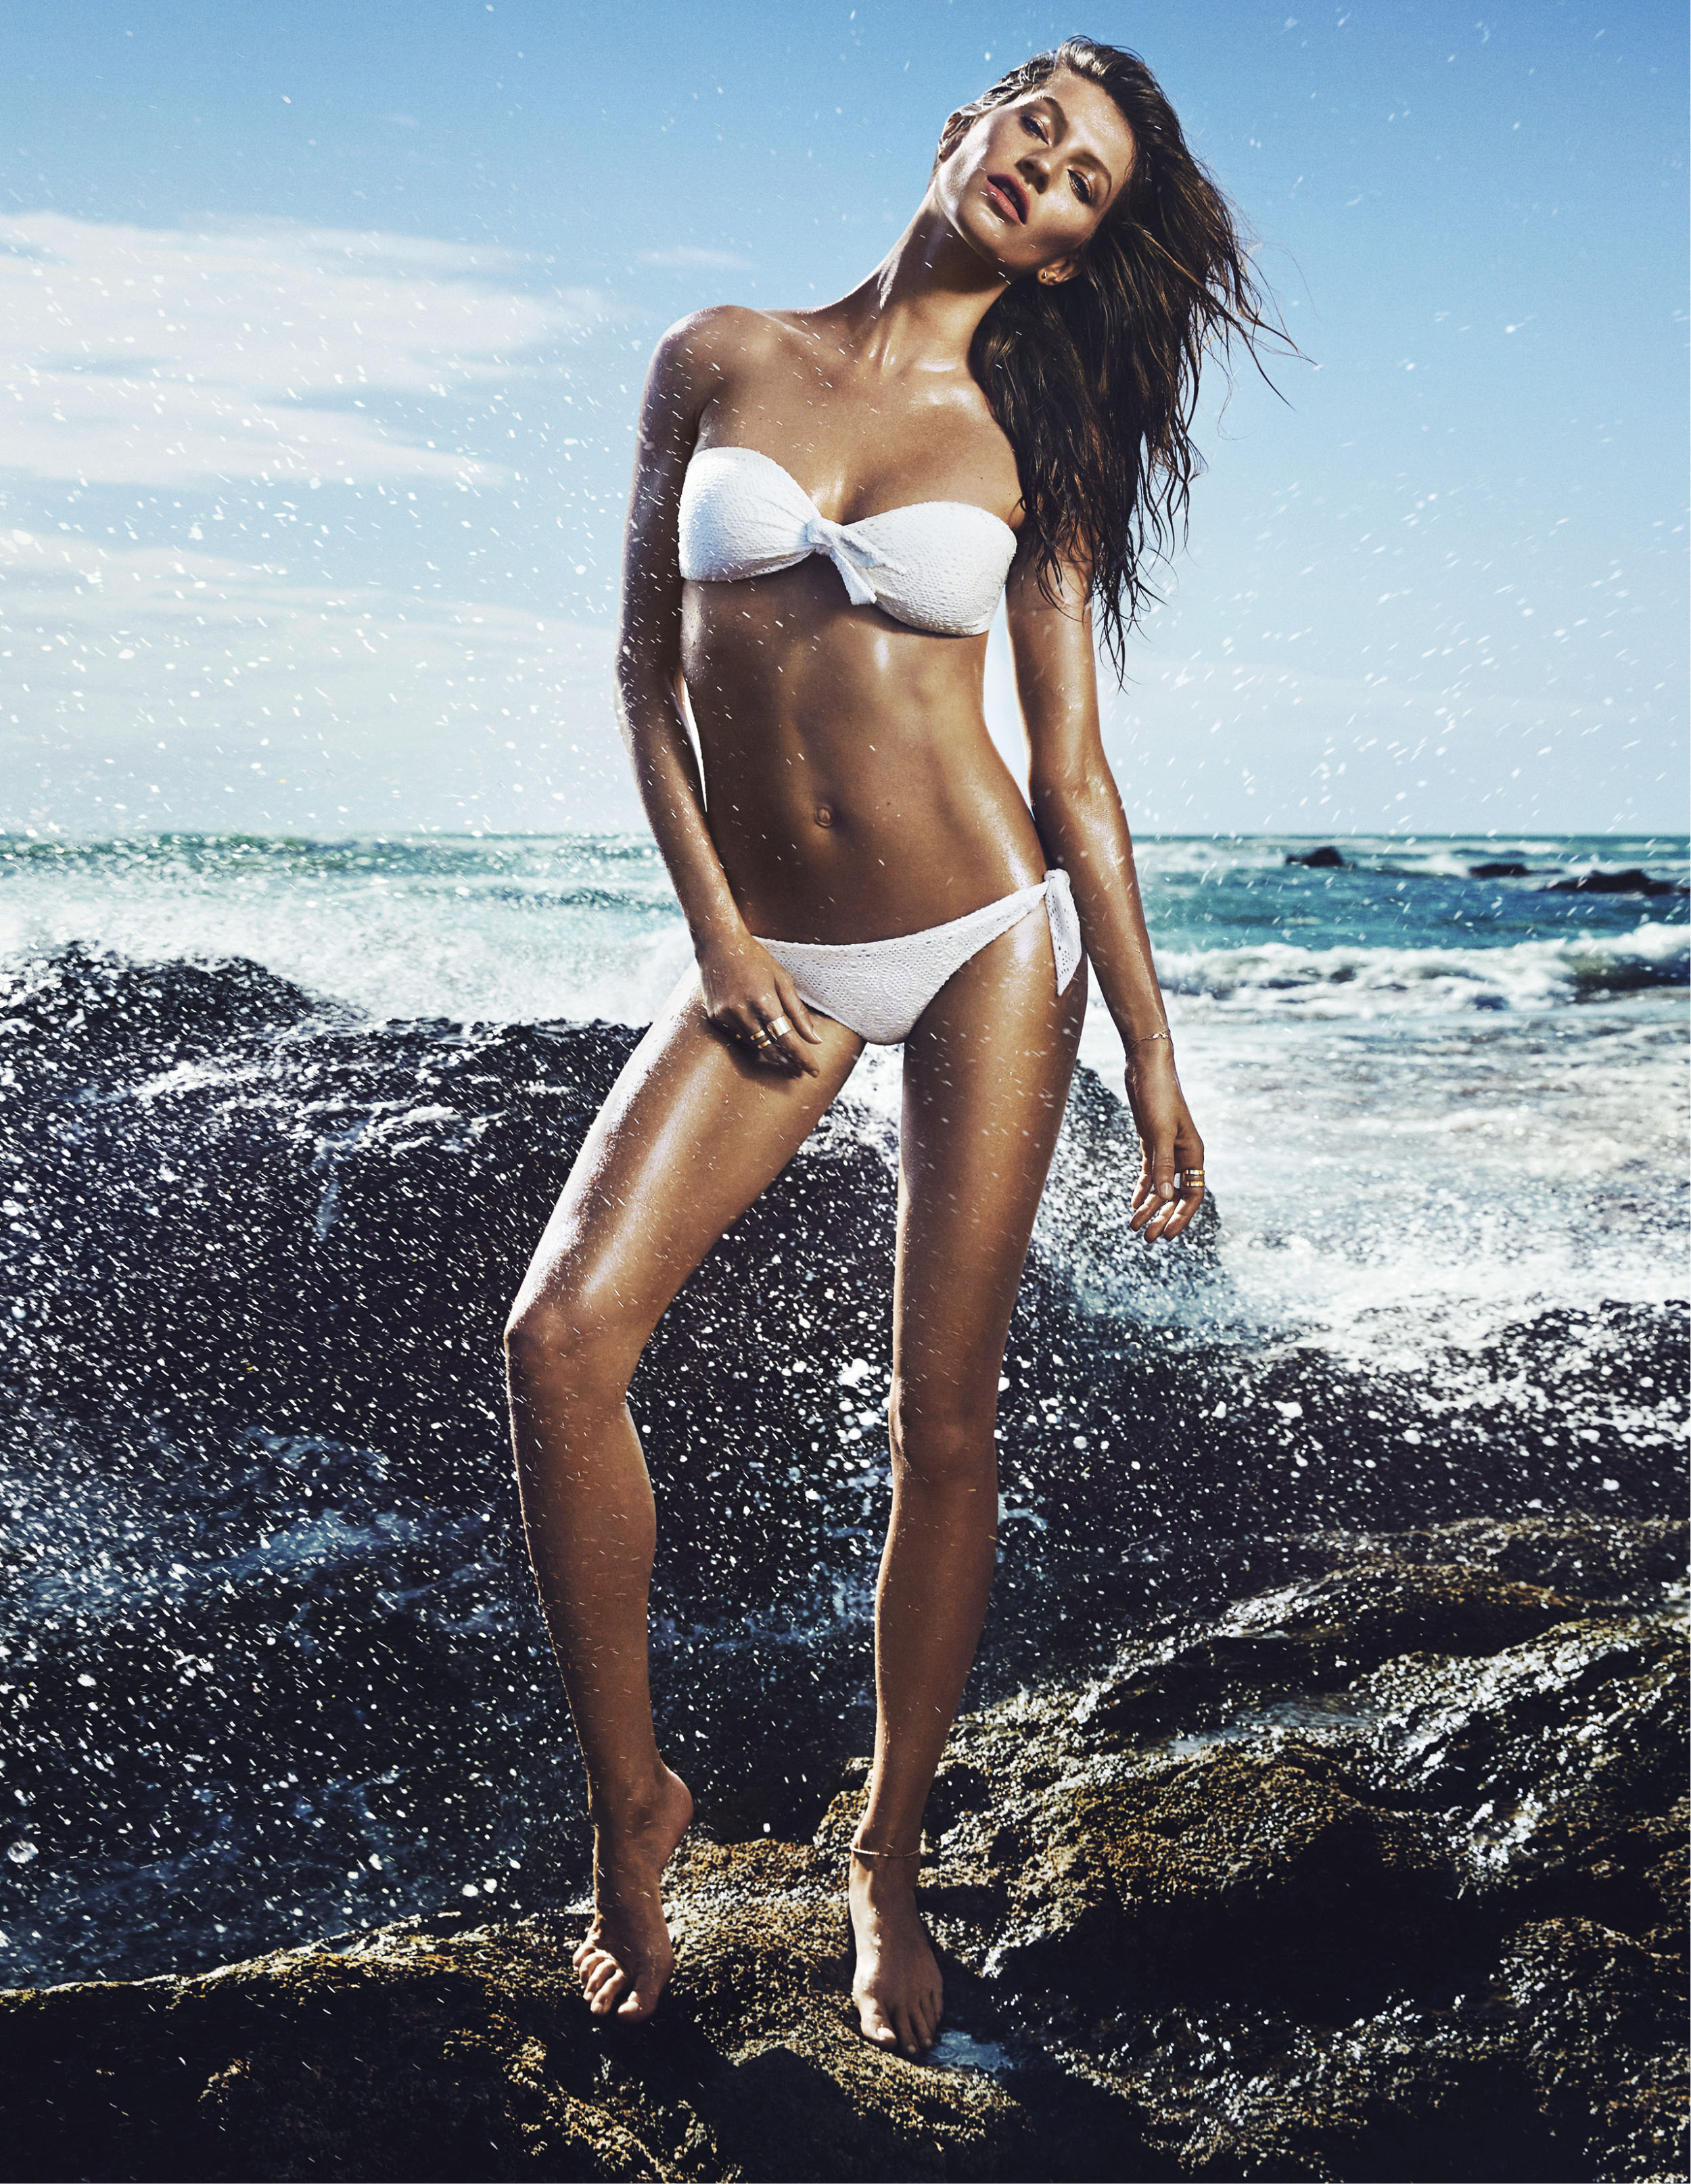 HM_Magazine_Fullpage_Swimwear_1084_101